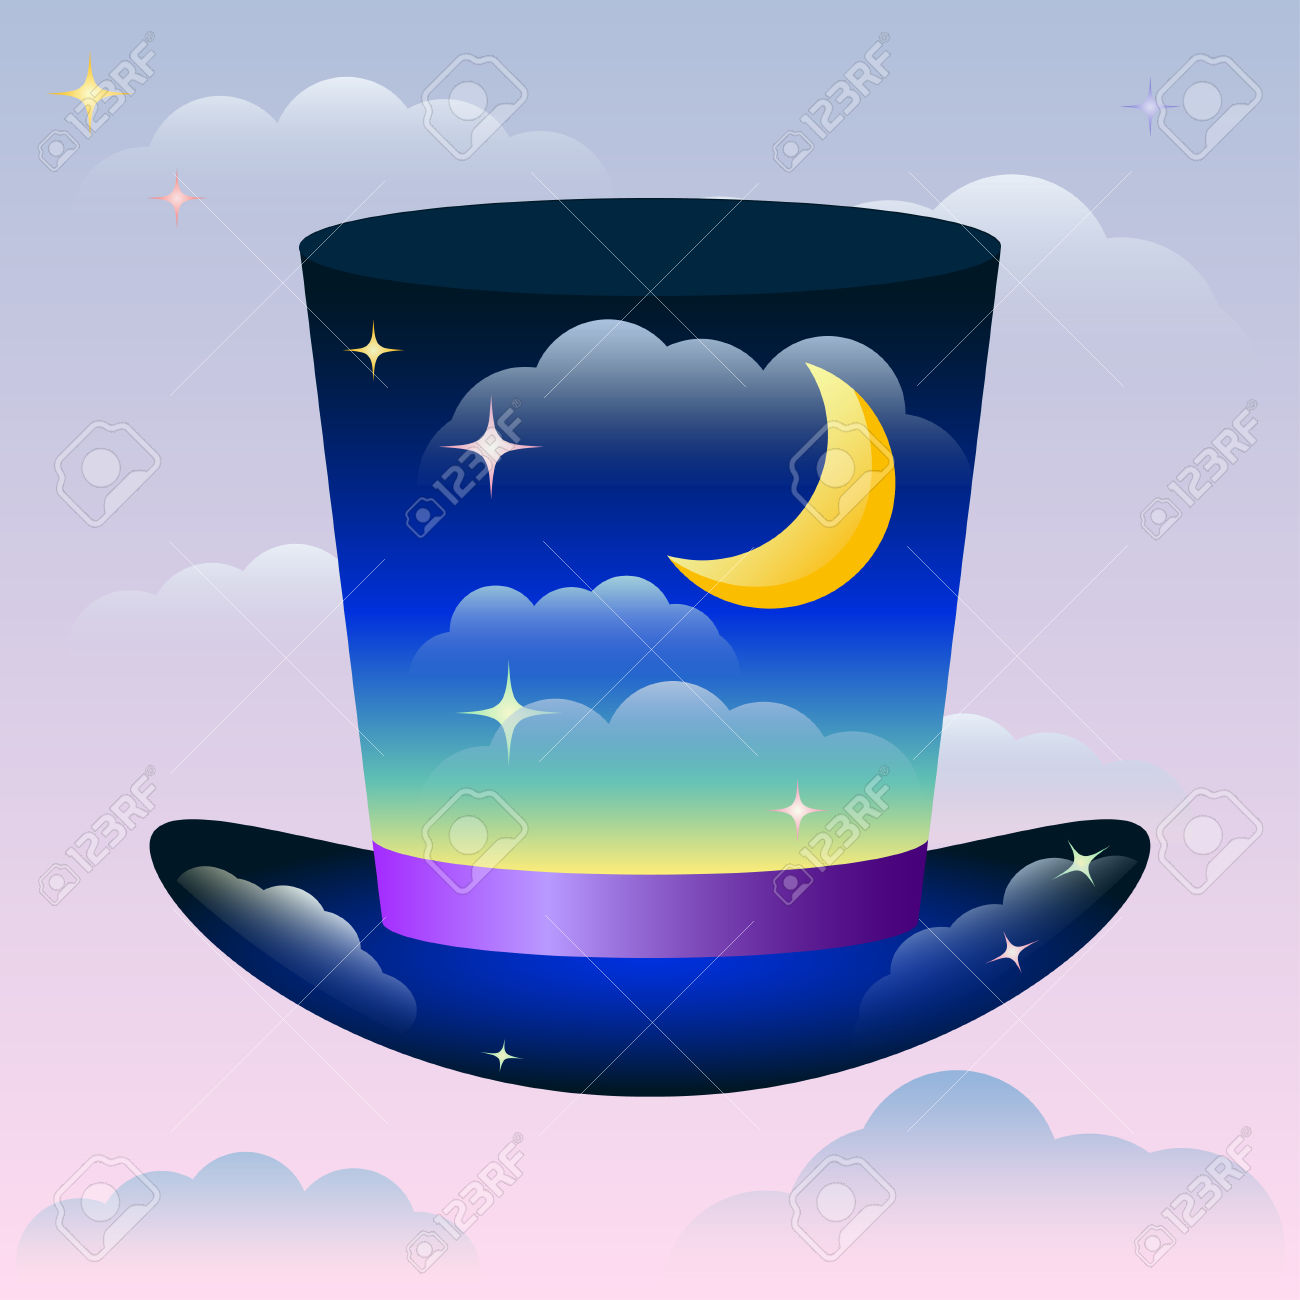 Illustration With Bright Magic Hat Floating In The Sunset Sky.